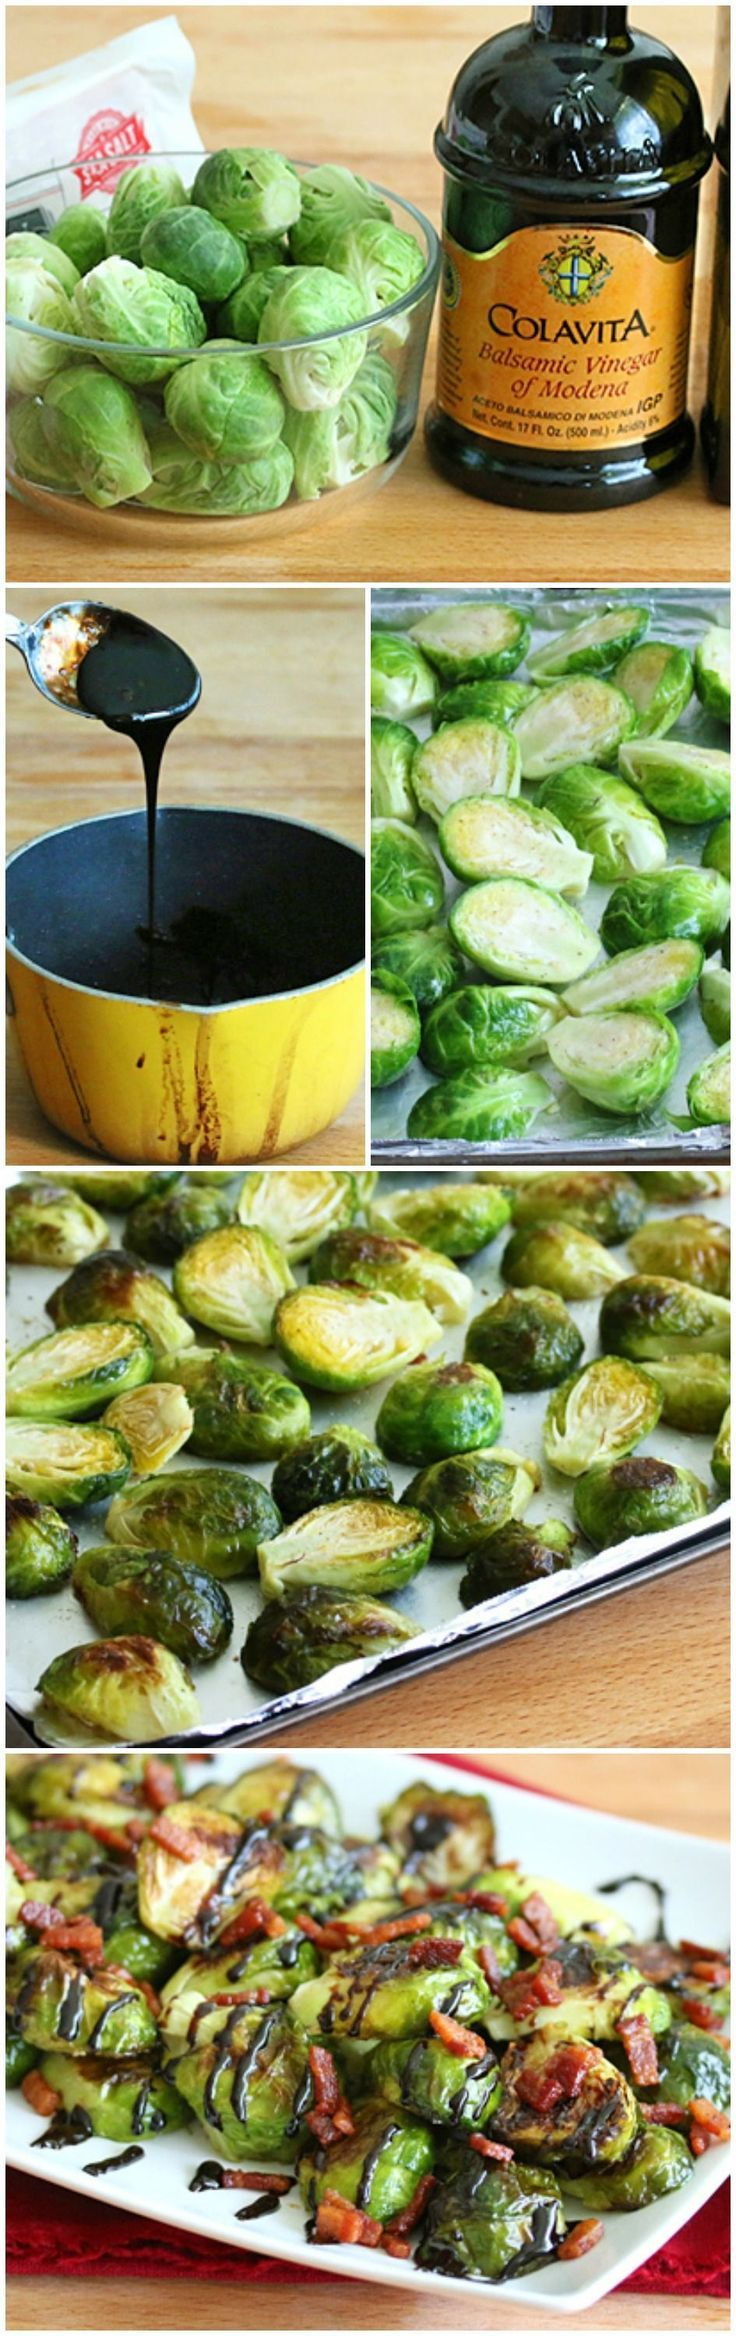 Grilled Brussels Sprouts with Bacon and Balsamic ~ If you have never tried grilled Brussels sprouts, you will notice how much you have missed.